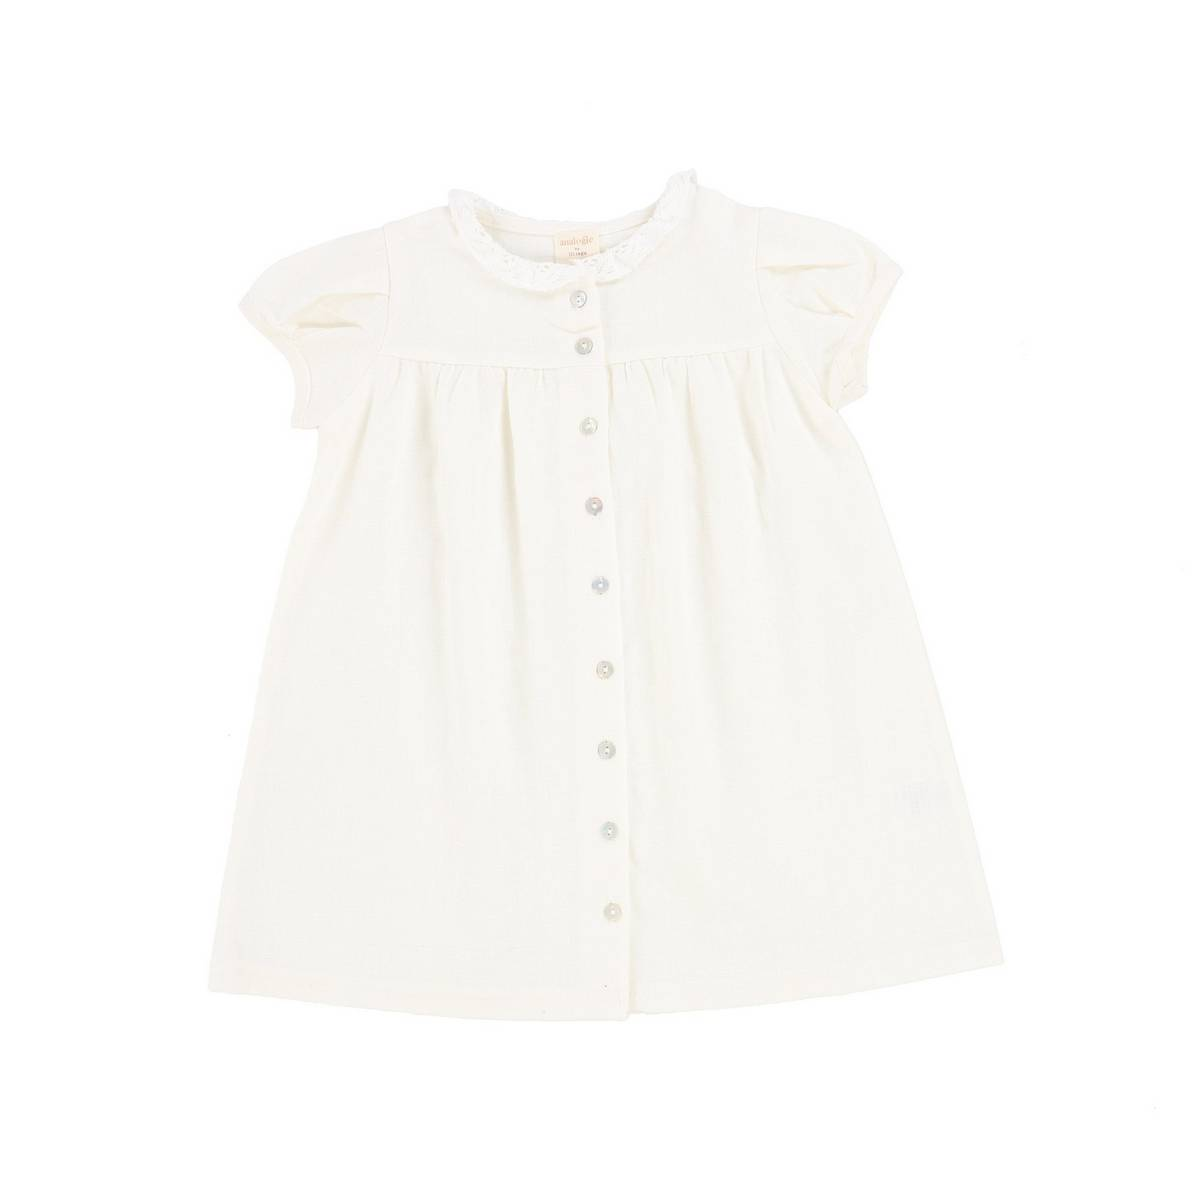 Analogie White Short Sleeve Linen Collar Dress